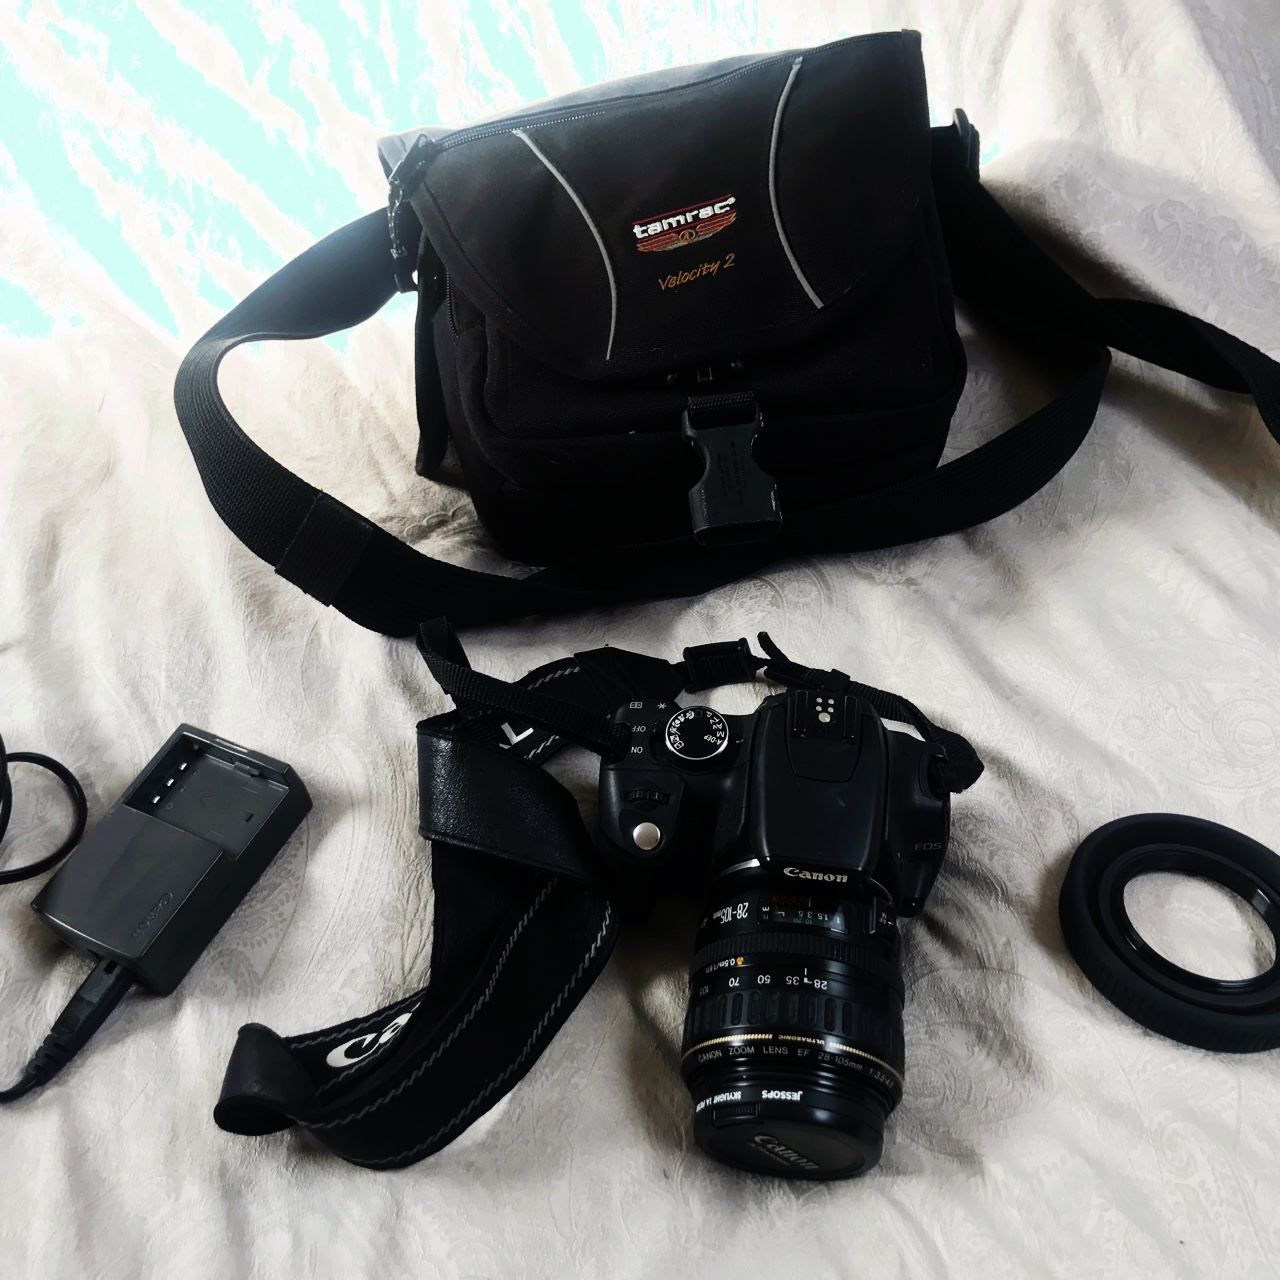 Canon DS126071  Everything perfect with accessories    - Depop